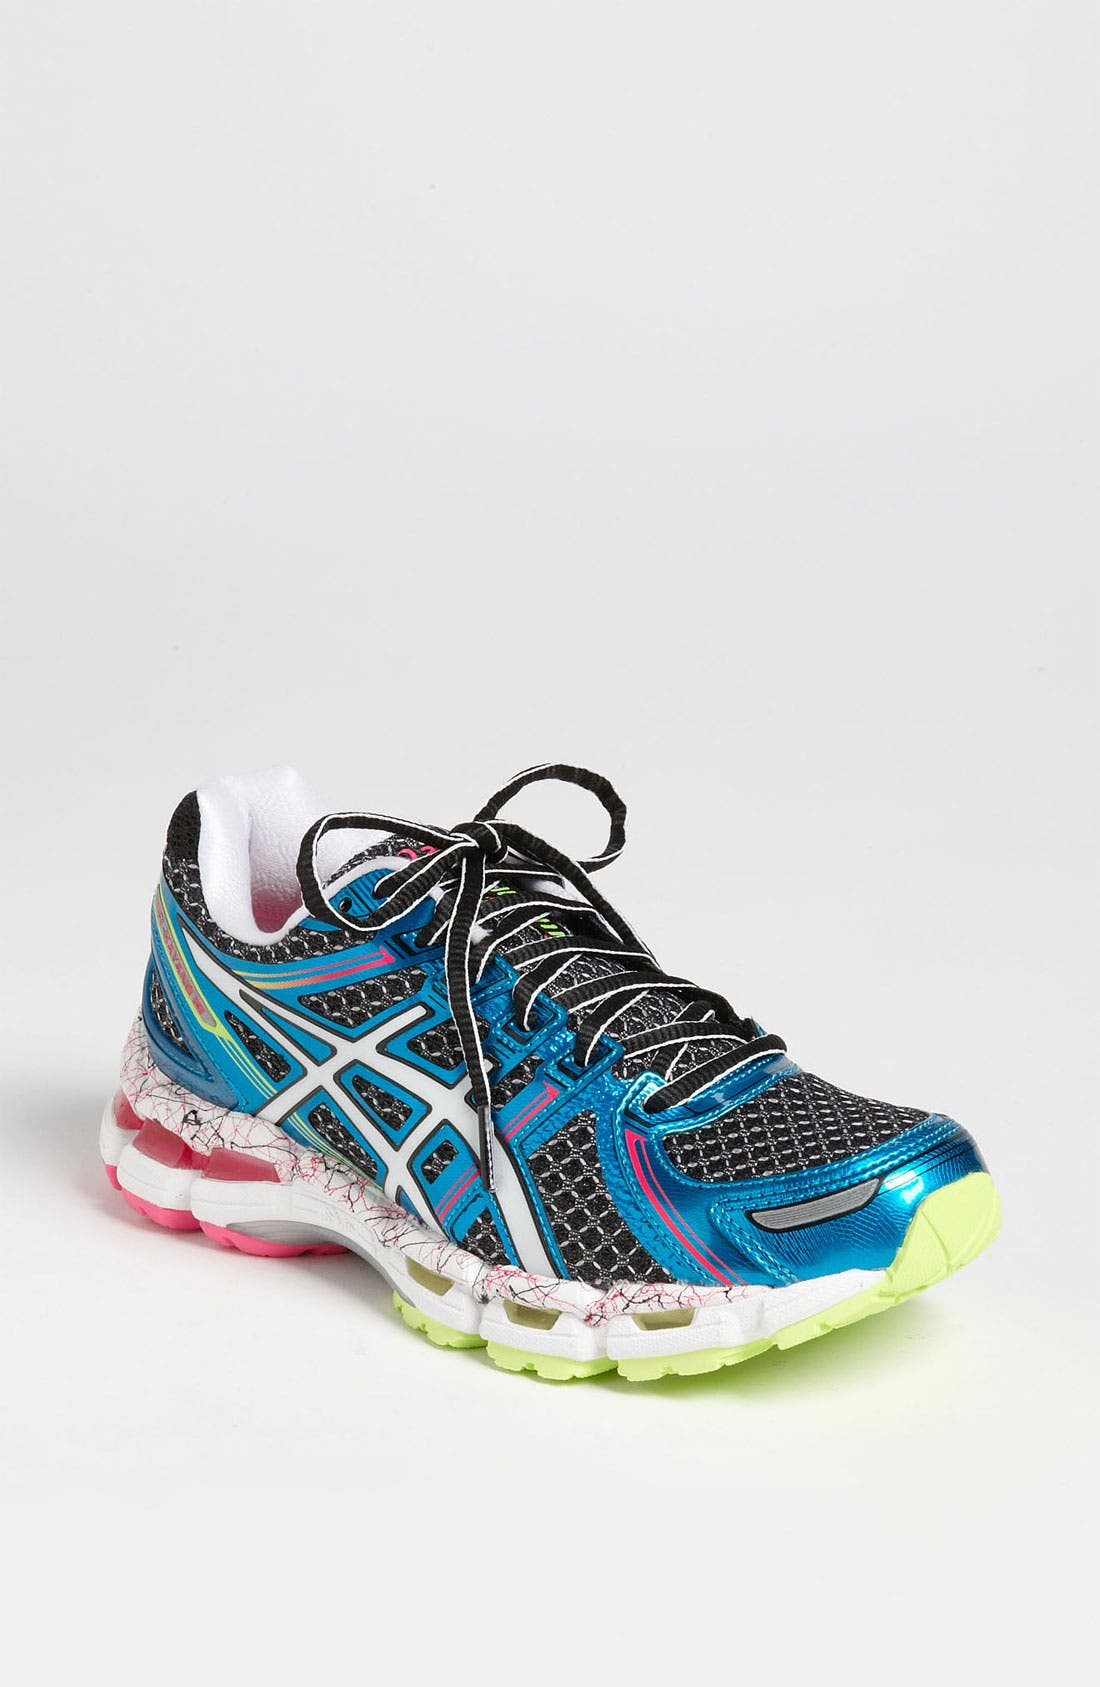 Main Image - ASICS® 'GEL-Kayano® 19' Running Shoe (Women)